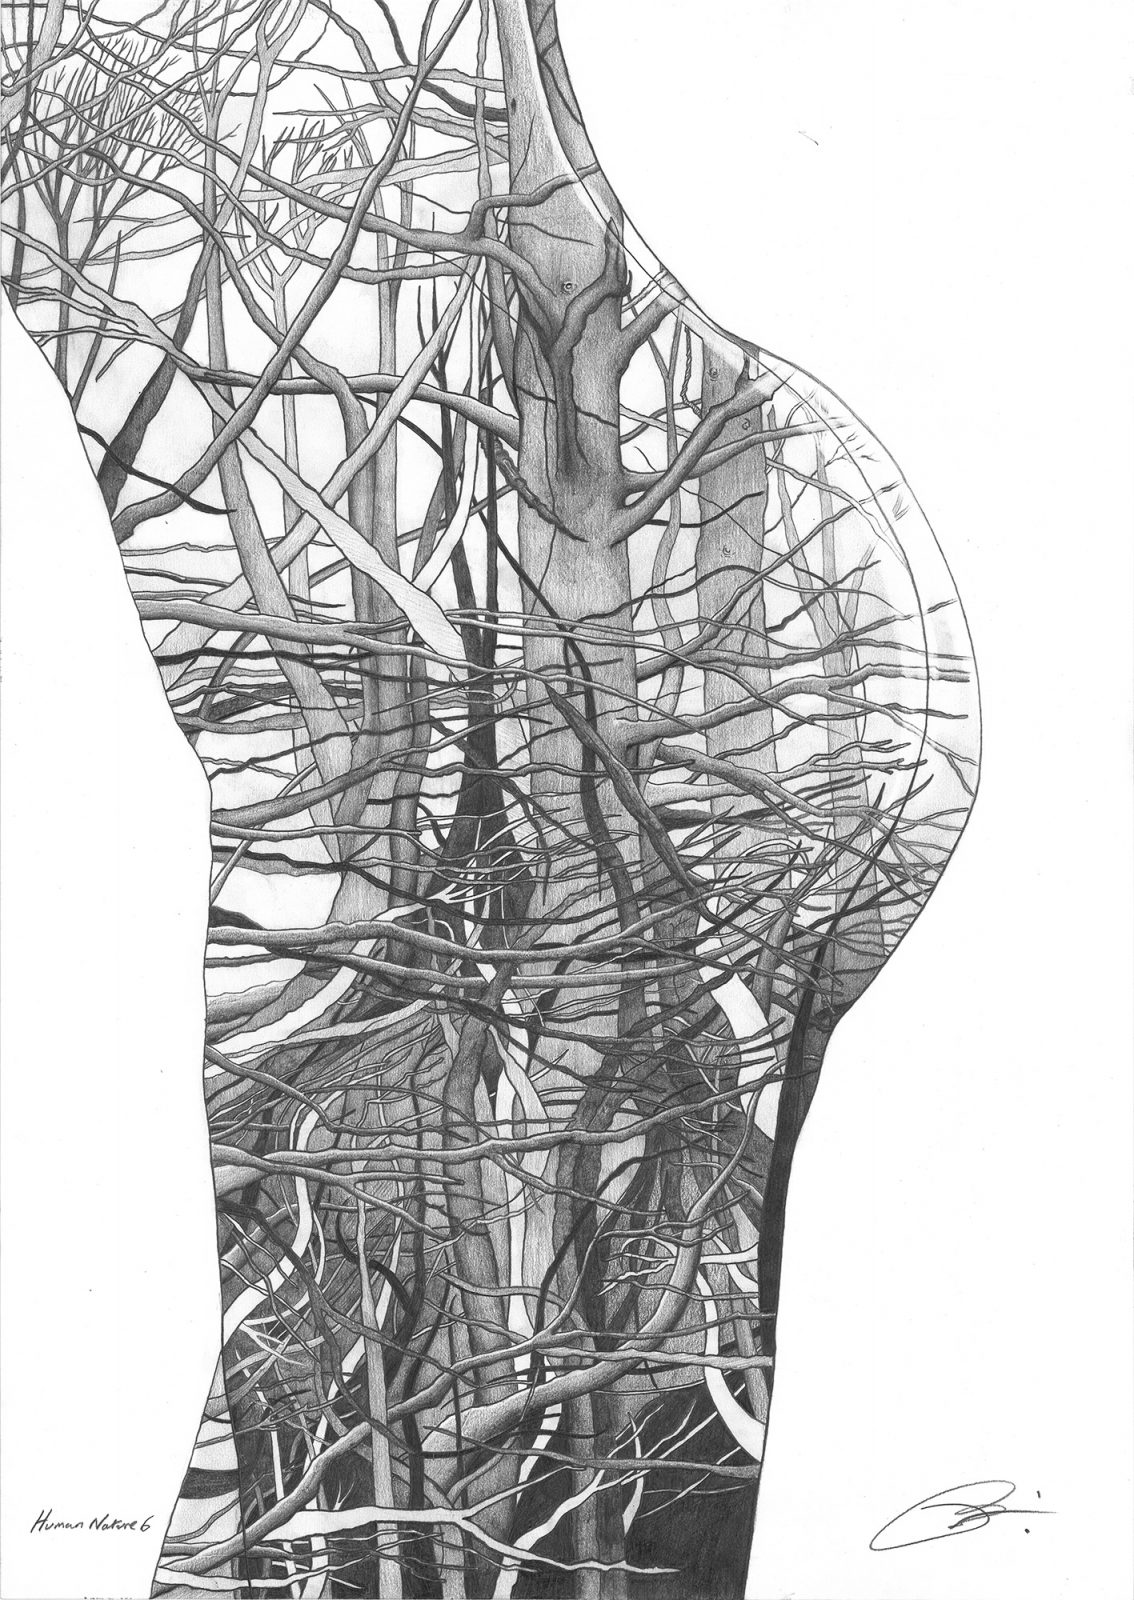 Human Nature 6 | Pencil on 200gsm paper | 42 x 59.4 cm